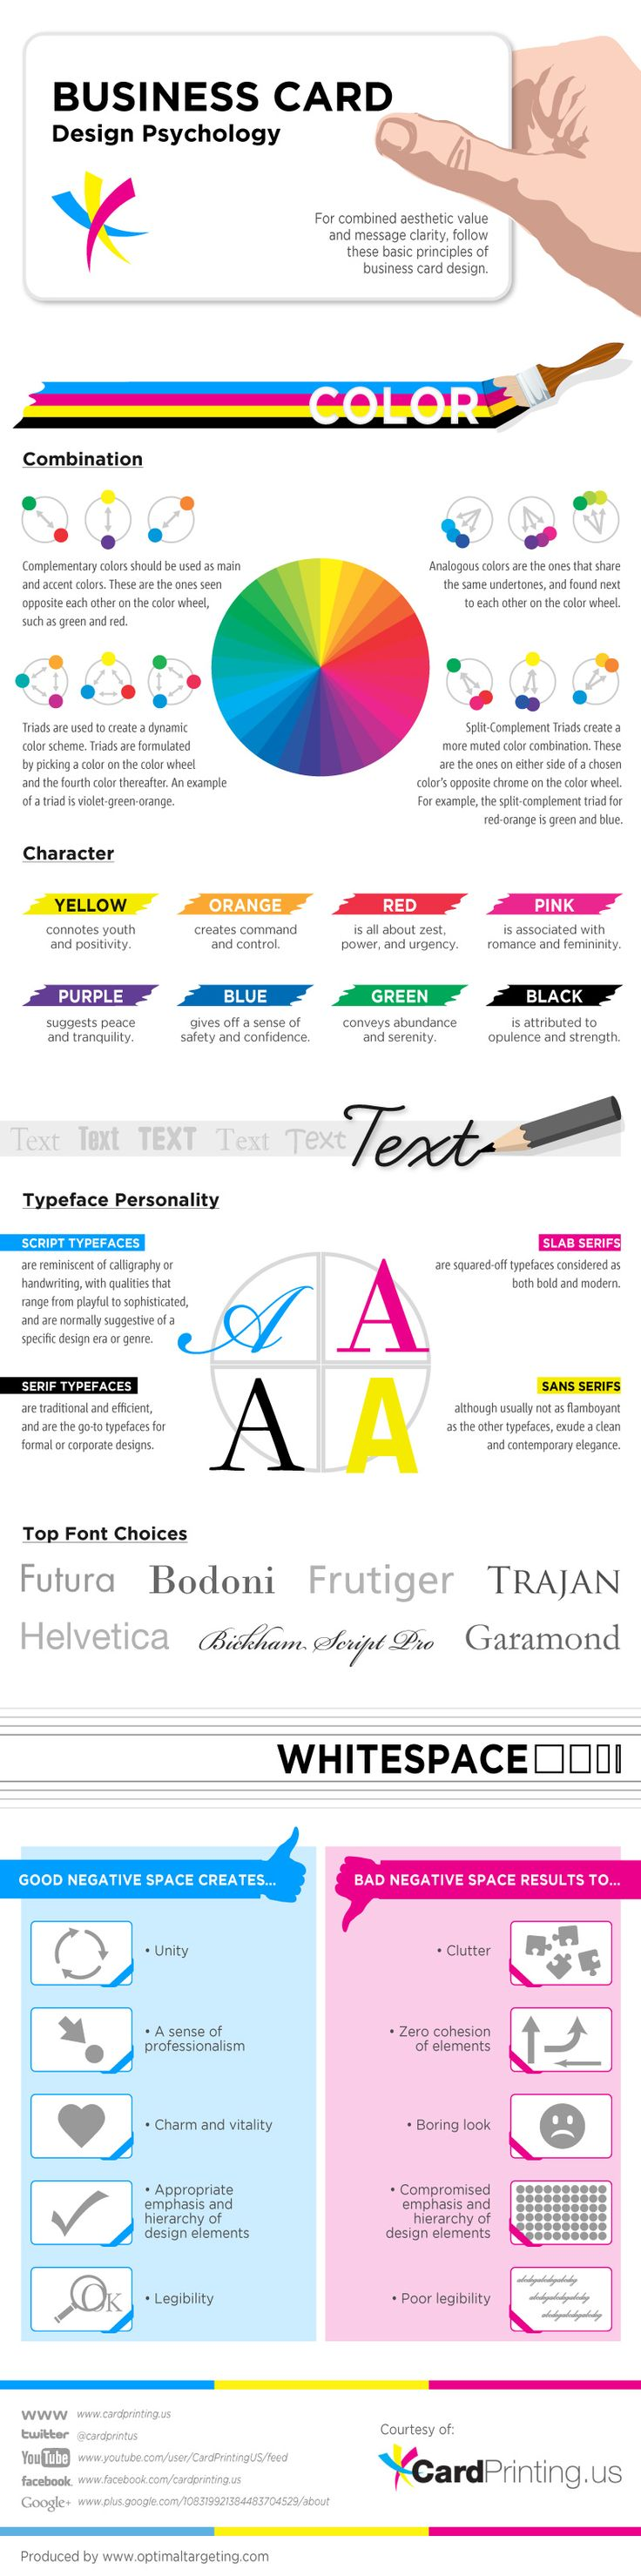 Business Card Psychology: Have a look at some basic principles in design and the psychology behind them that will help you design a business card that will successfully convey the character and personality of your company.